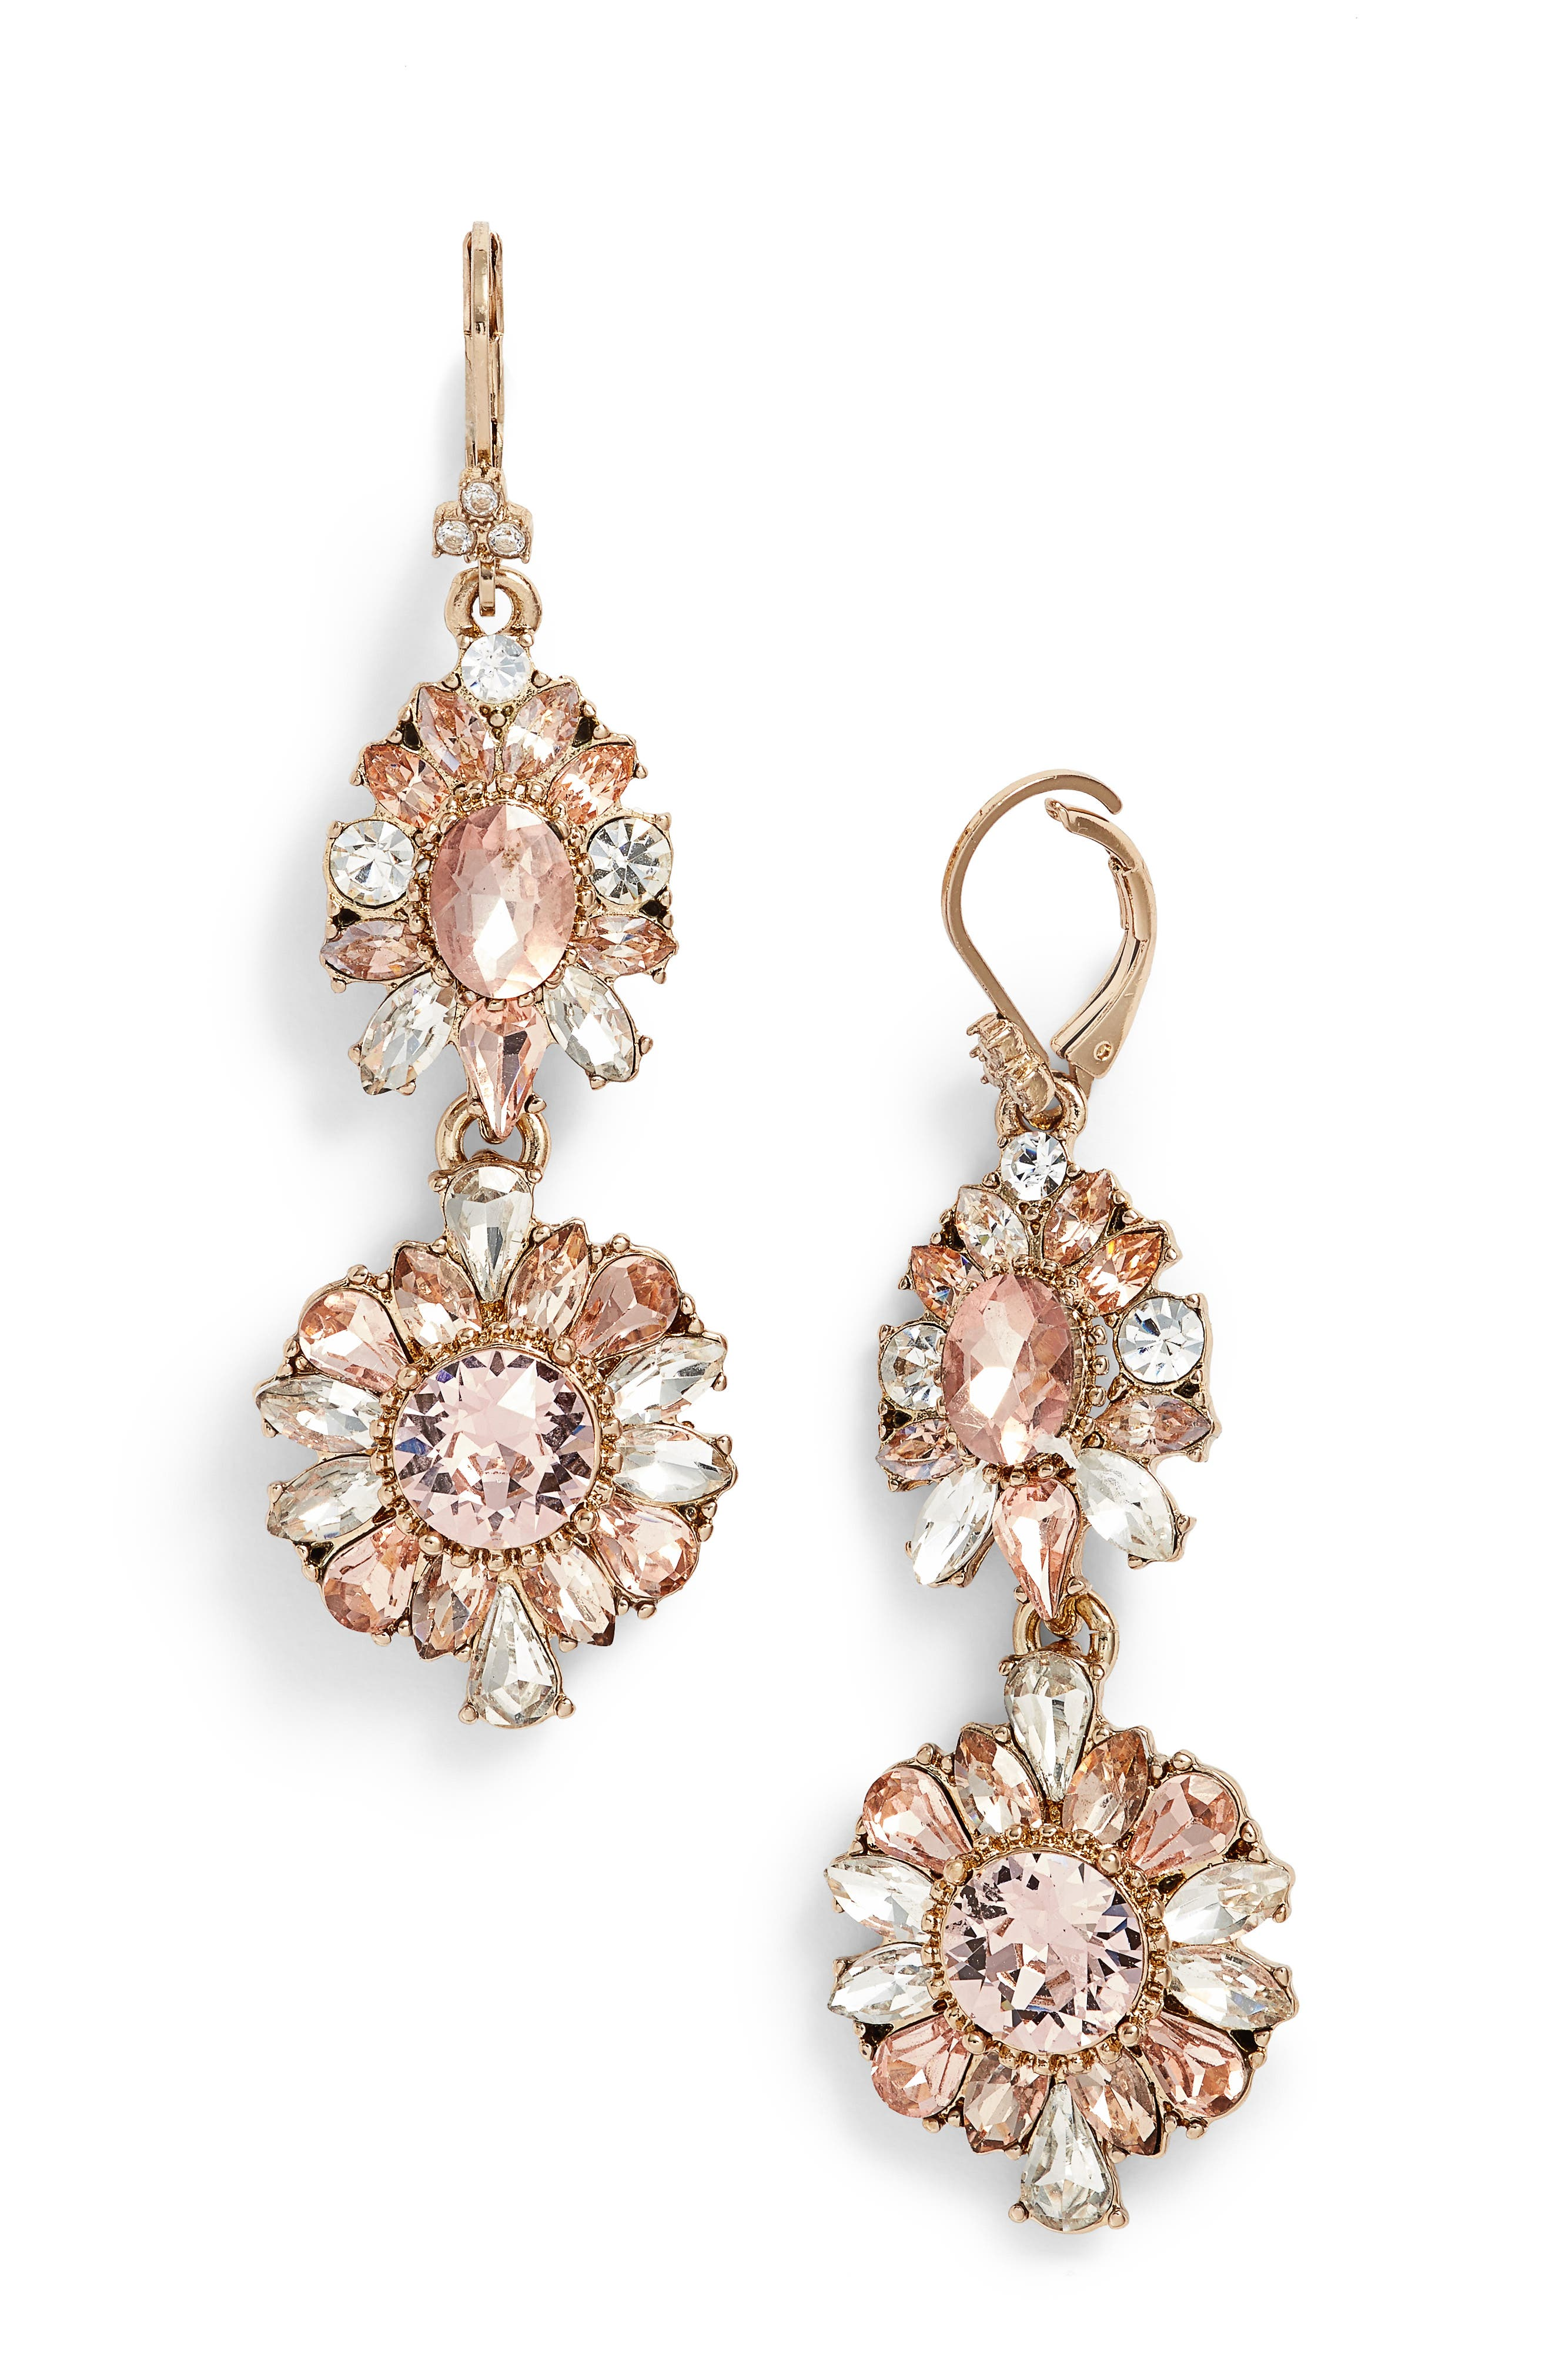 Double Drop Crystal Earrings,                             Main thumbnail 1, color,                             GOLD/ VINTAGE ROSE